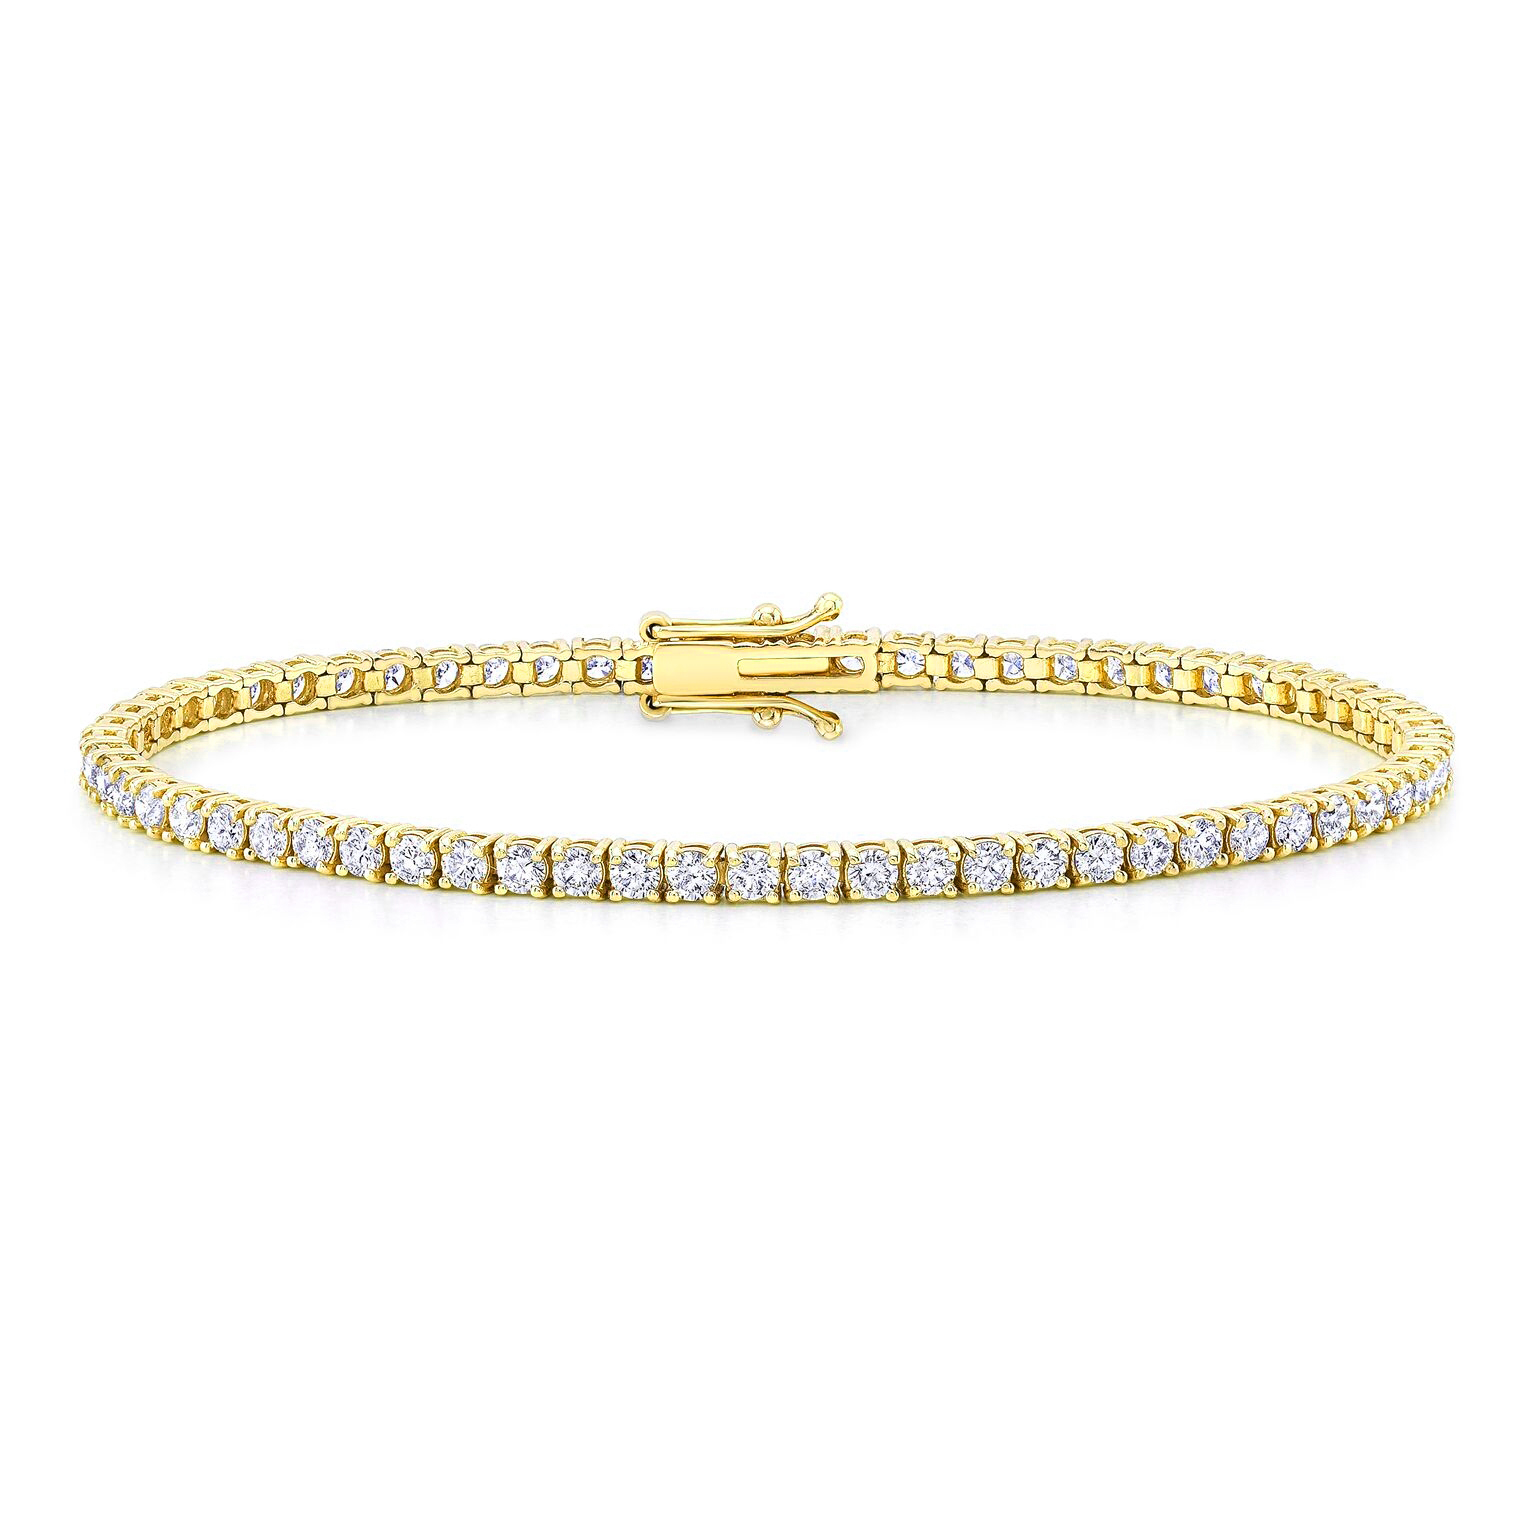 Nicolette 3.64ct. Diamond Tennis Bracelet